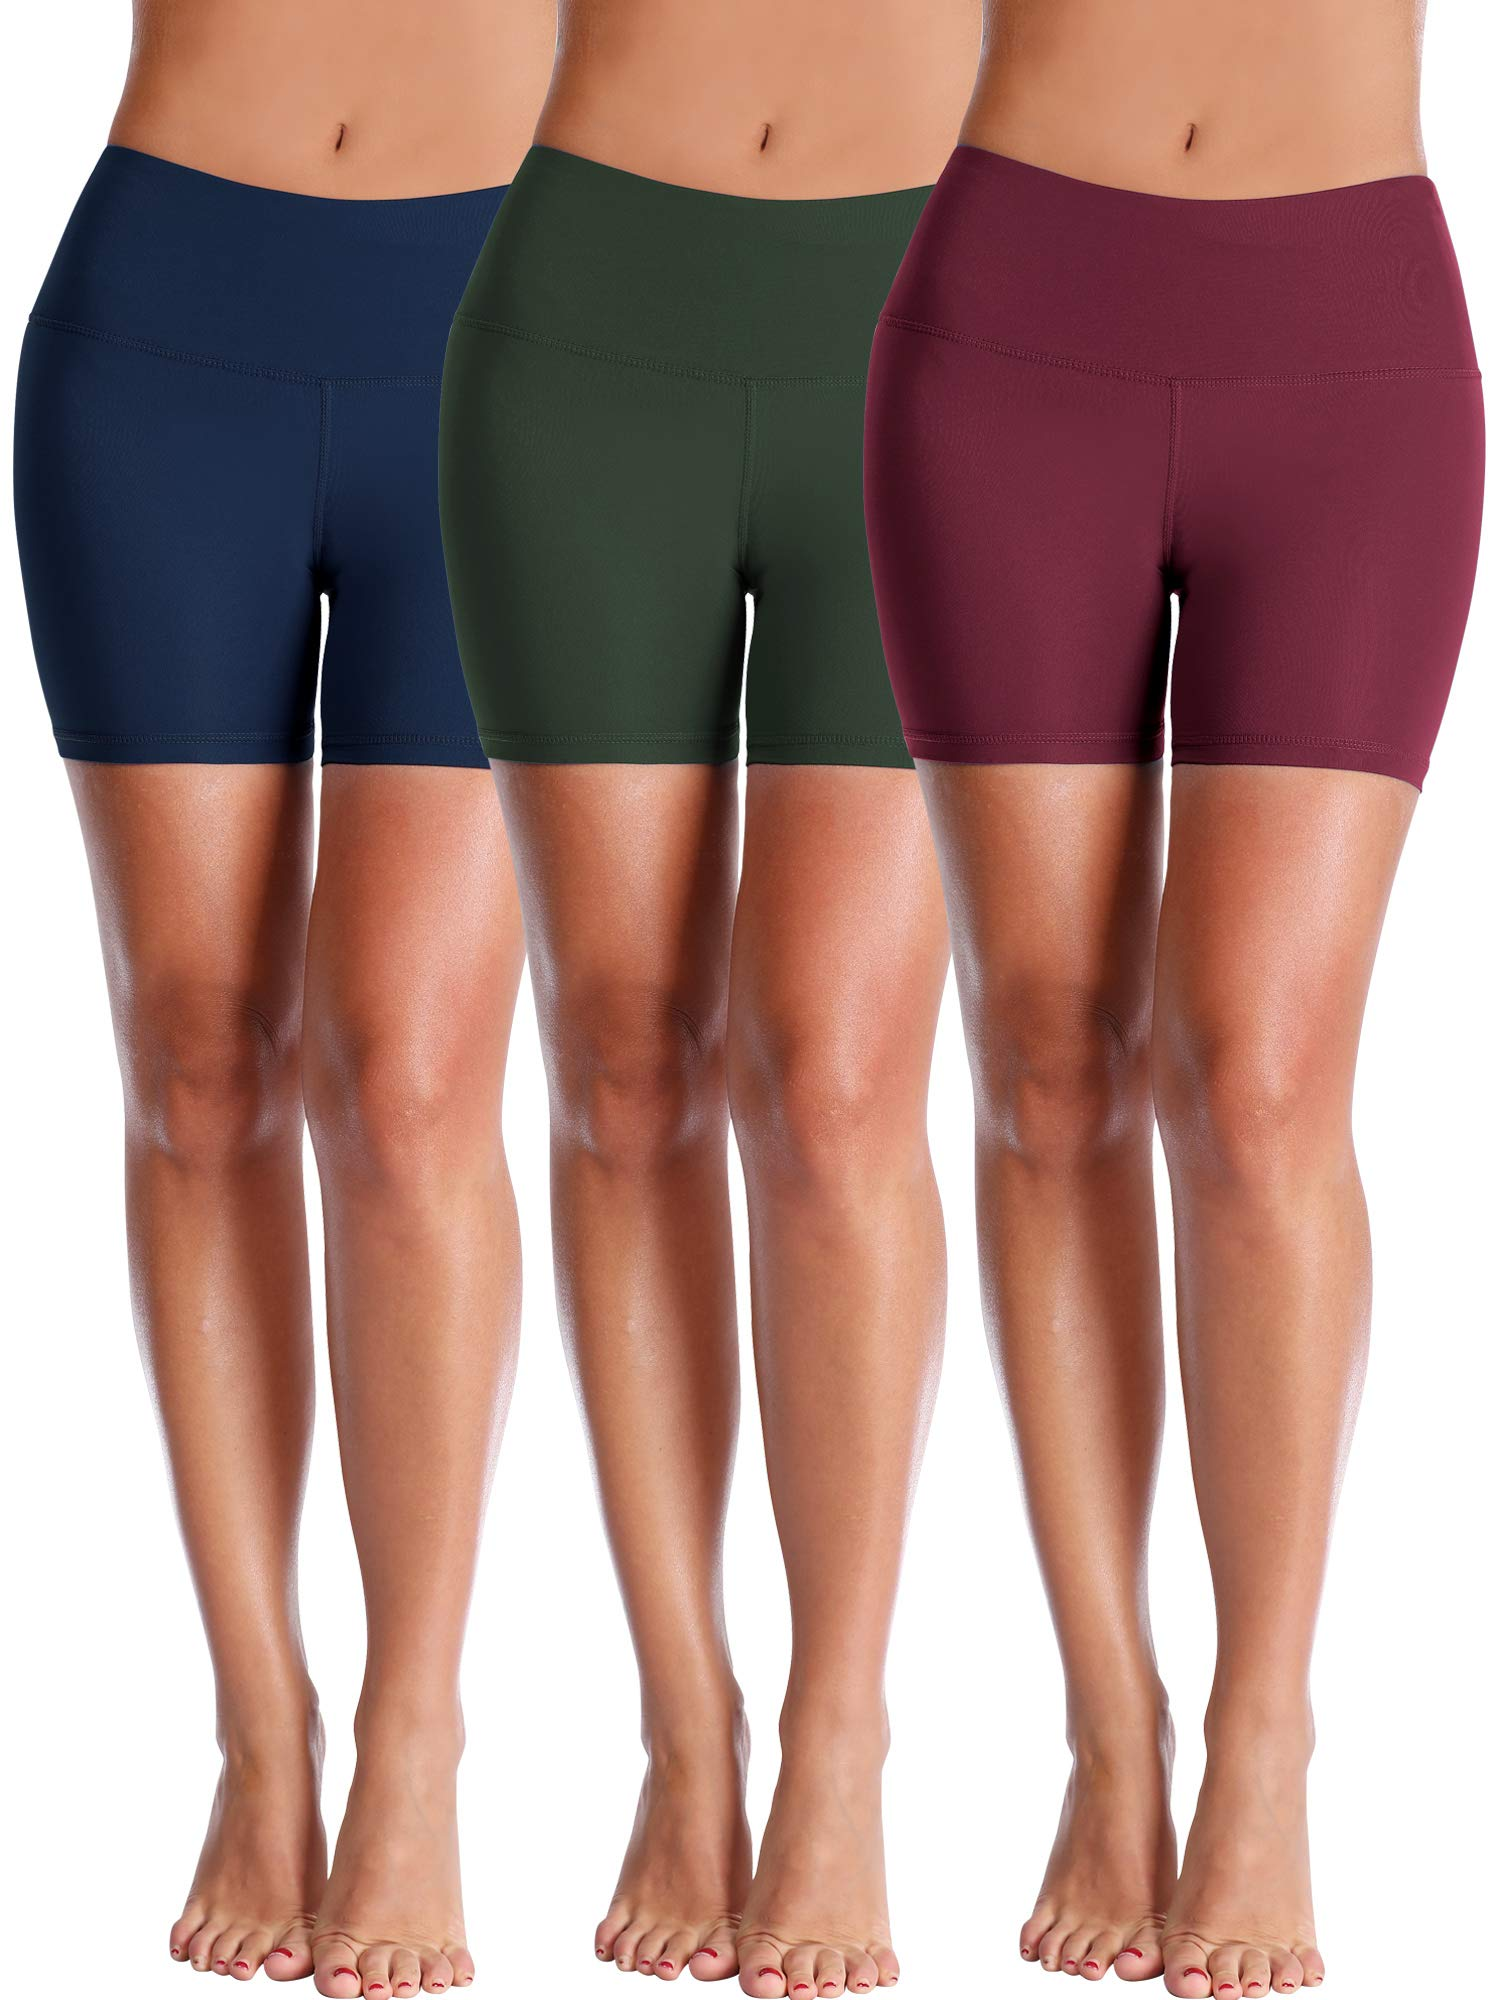 Cadmus Women's High Waisted Compression Shorts,3 Pack,1025,Navy Blue,Dark Green,Wine Red,X-Small by Cadmus